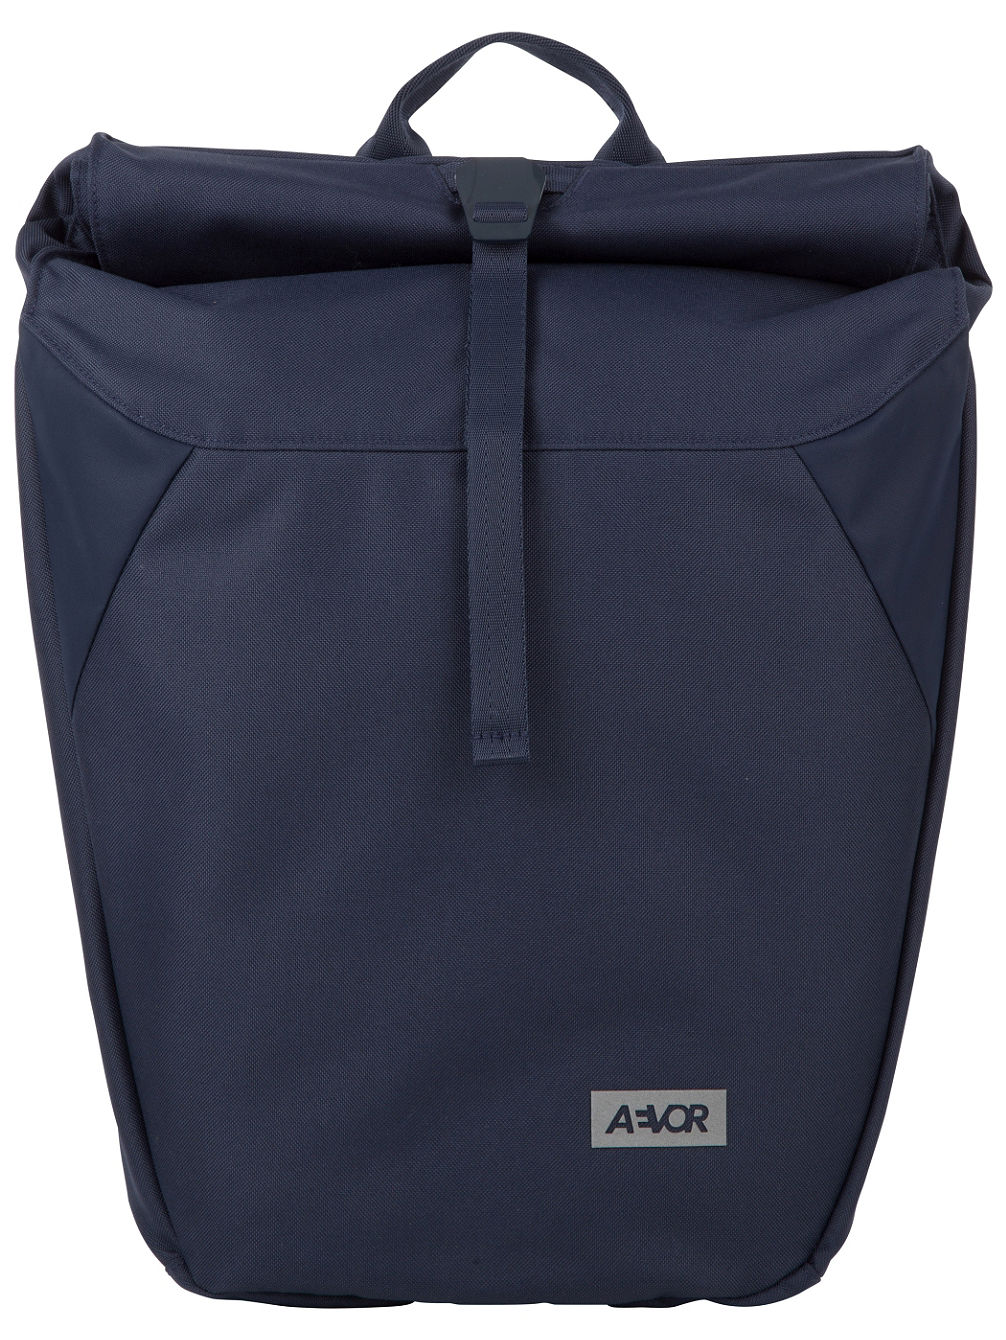 aevor-rolltop-backpack